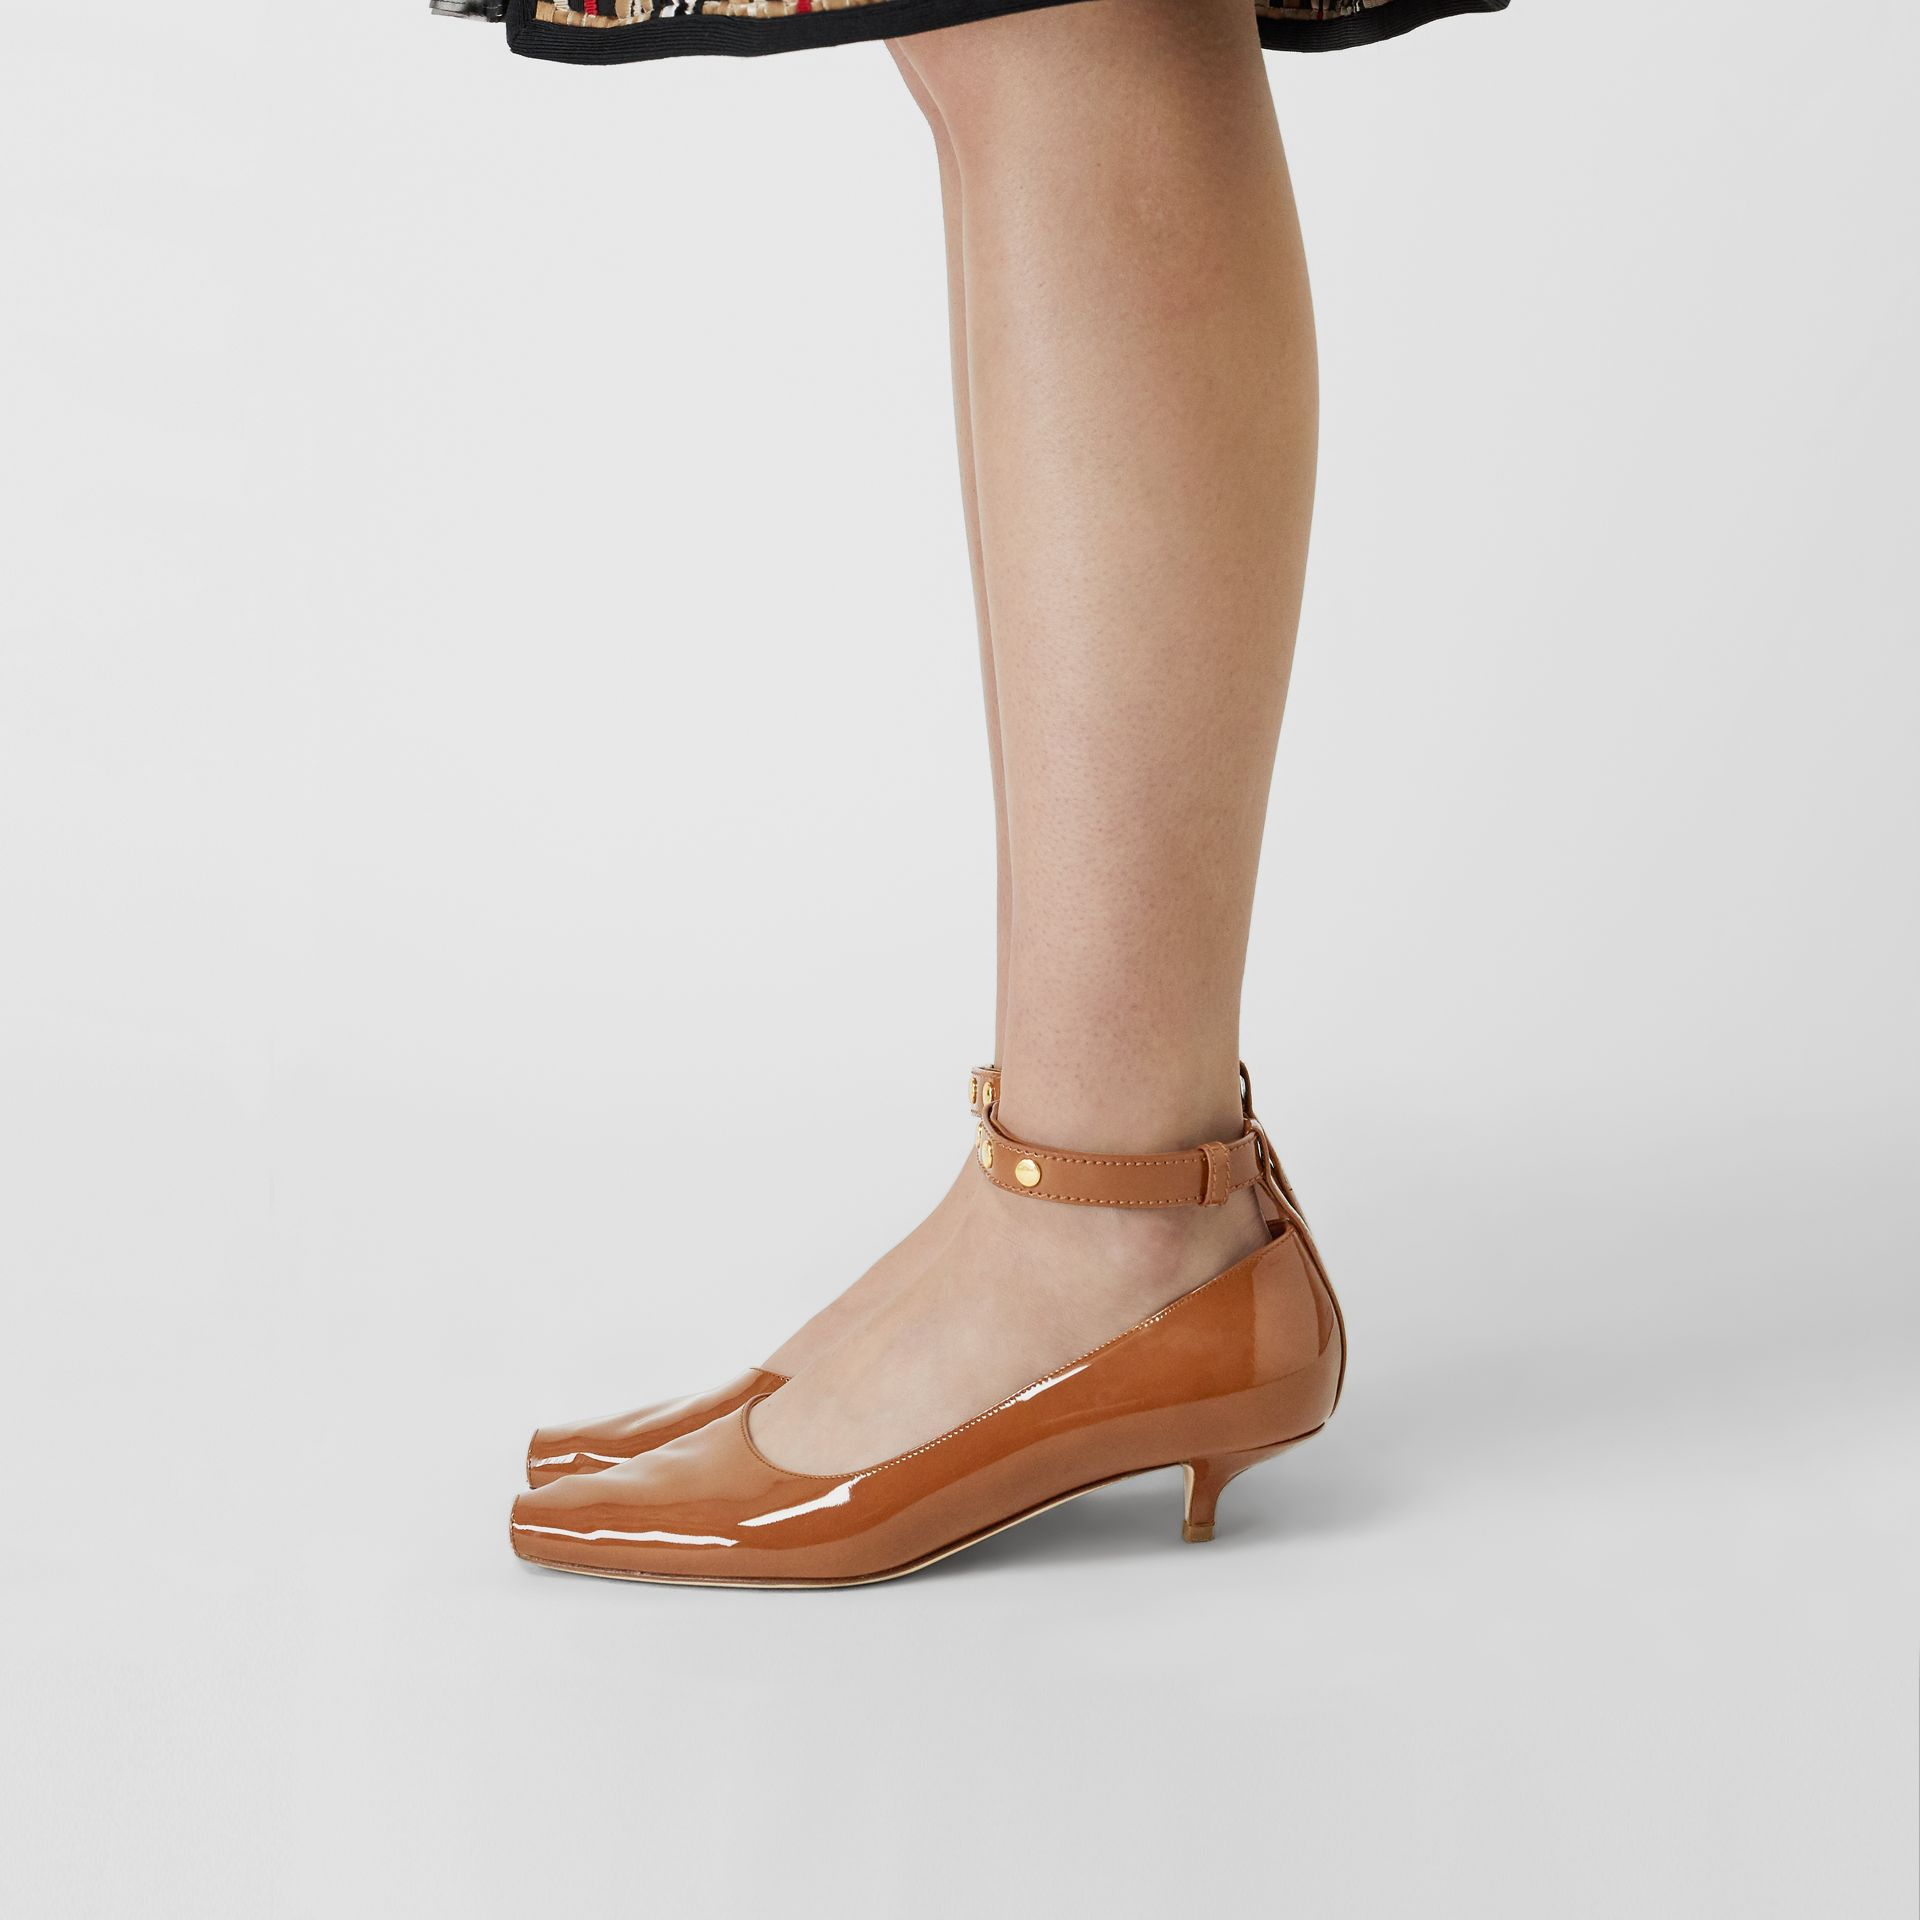 Patent Leather Peep-toe Kitten-heel Pumps in Tan - Women | Burberry United States - gallery image 2